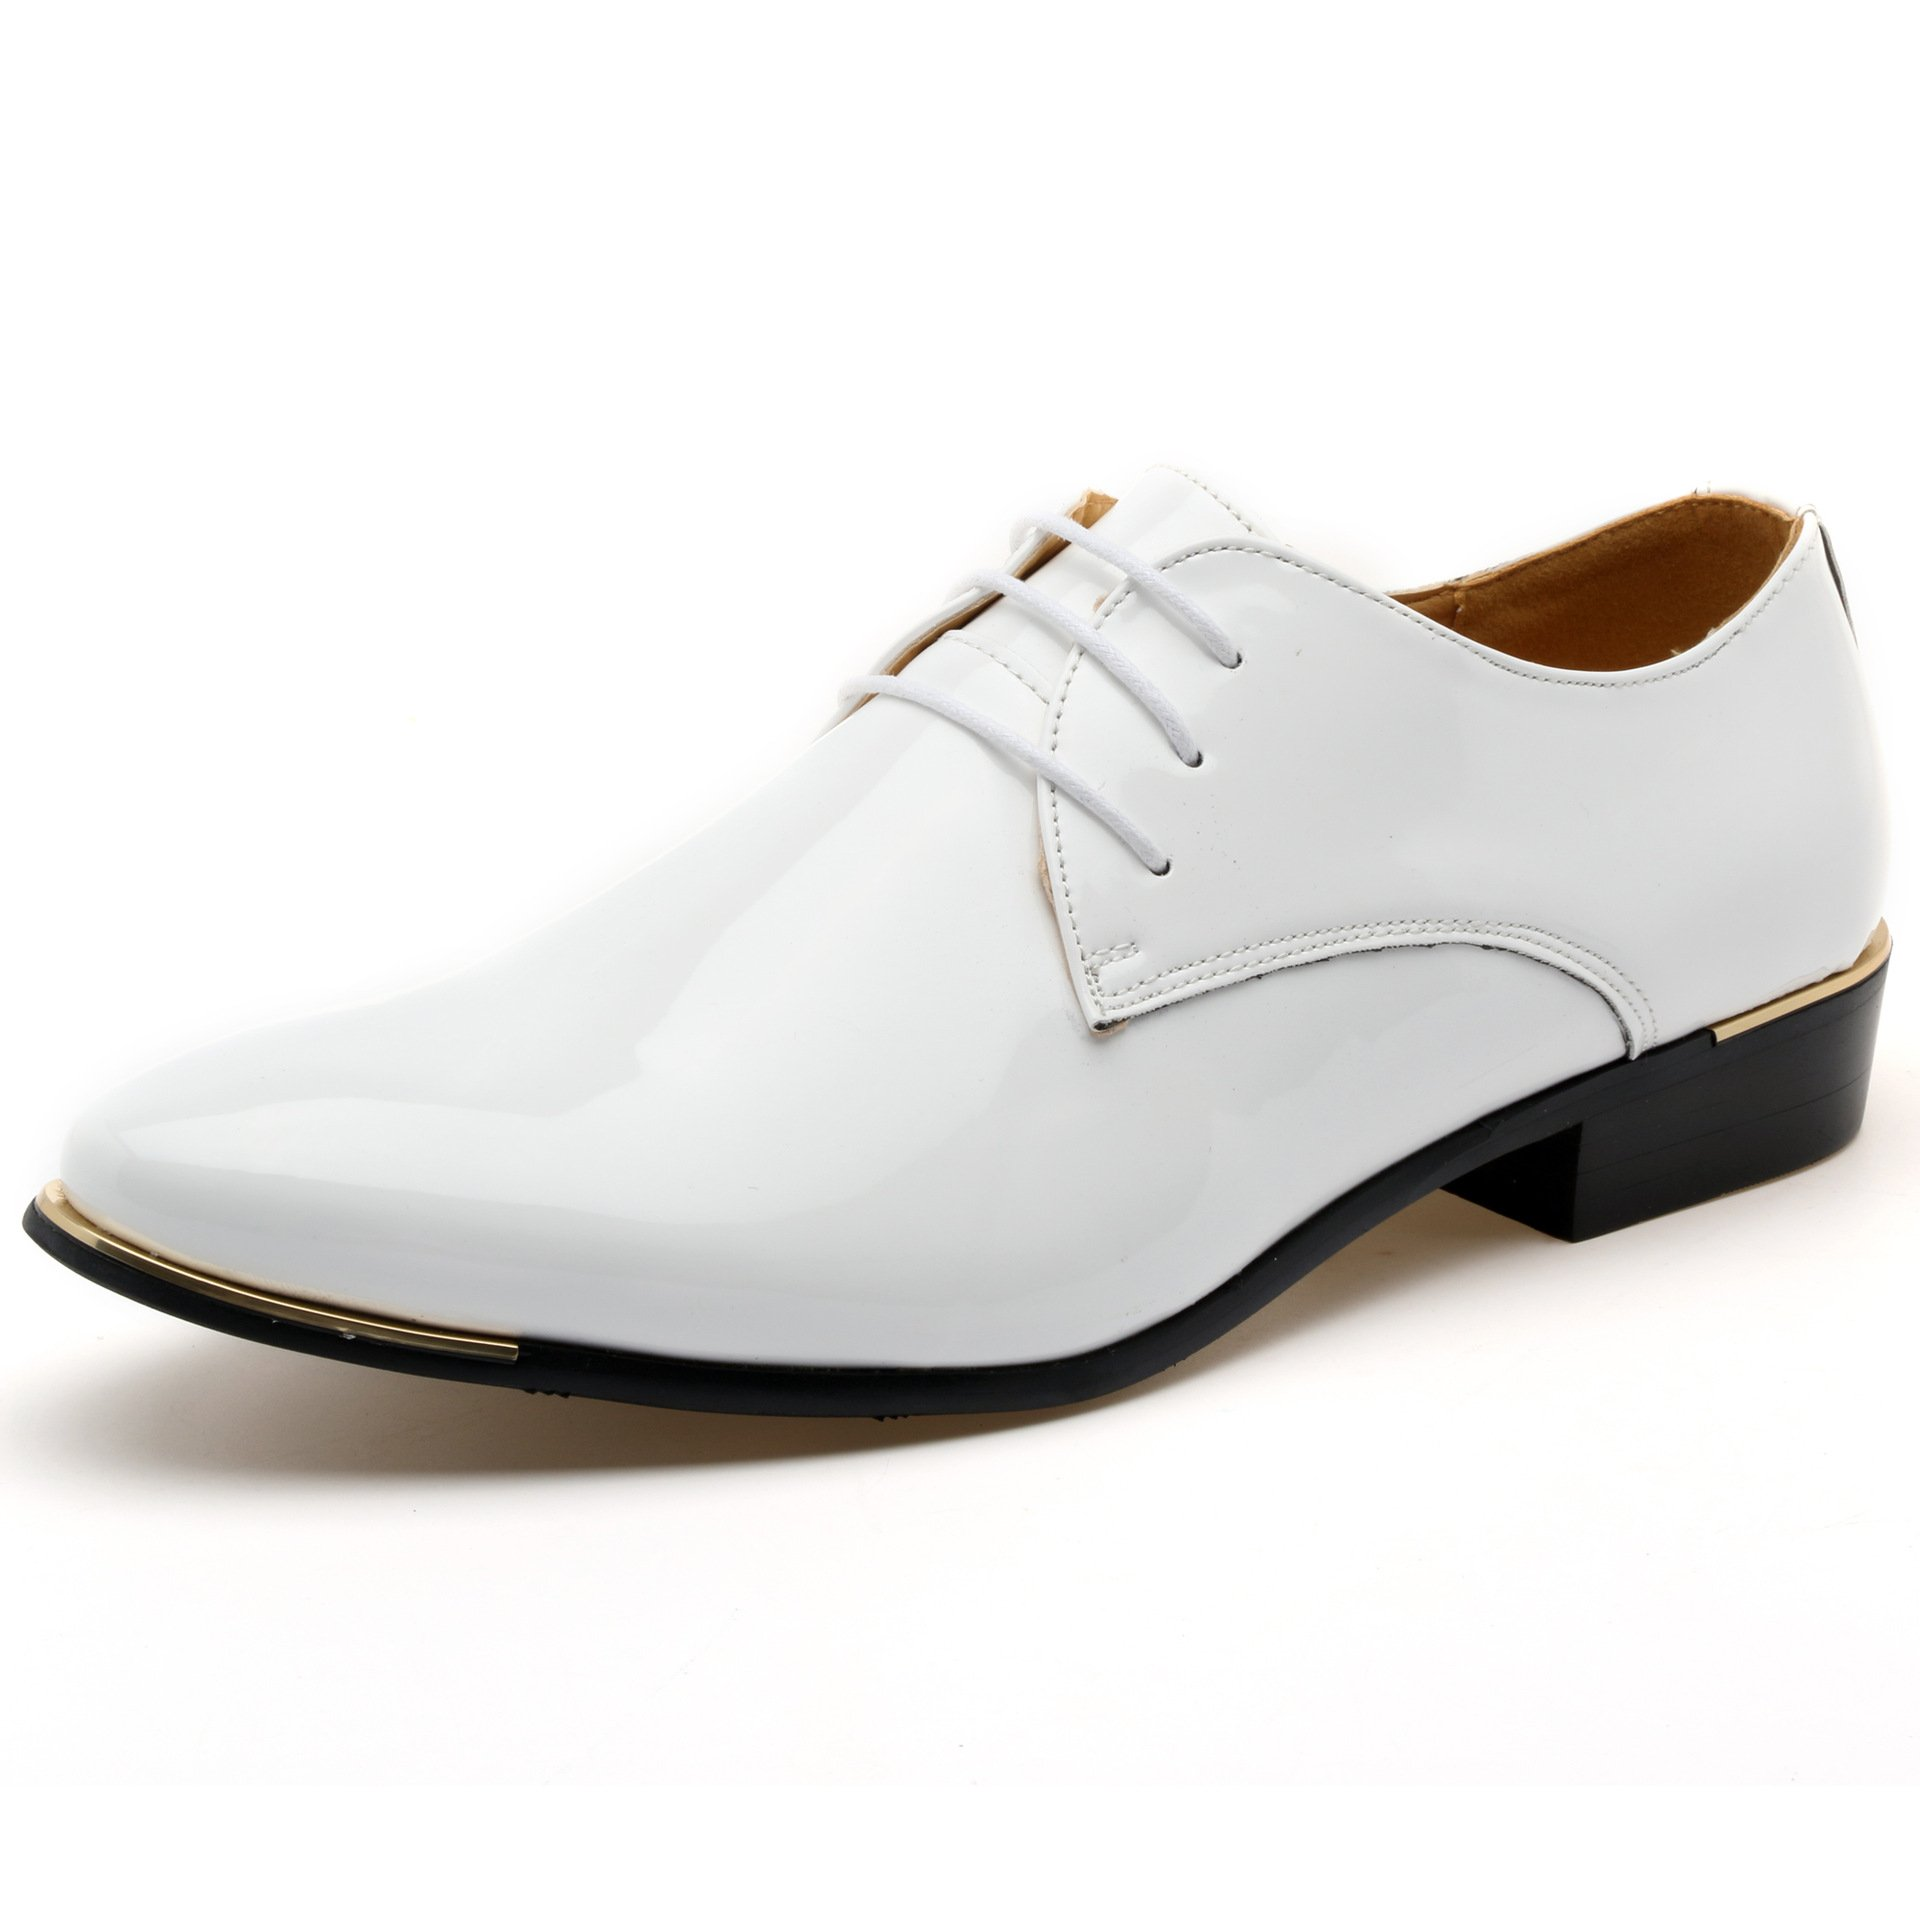 Z-joyee Mens Patent Leather Tuxedo Dress Shoes Lace up Pointed Toe Oxfords Formal Wedding Shoes, White, US 8.5